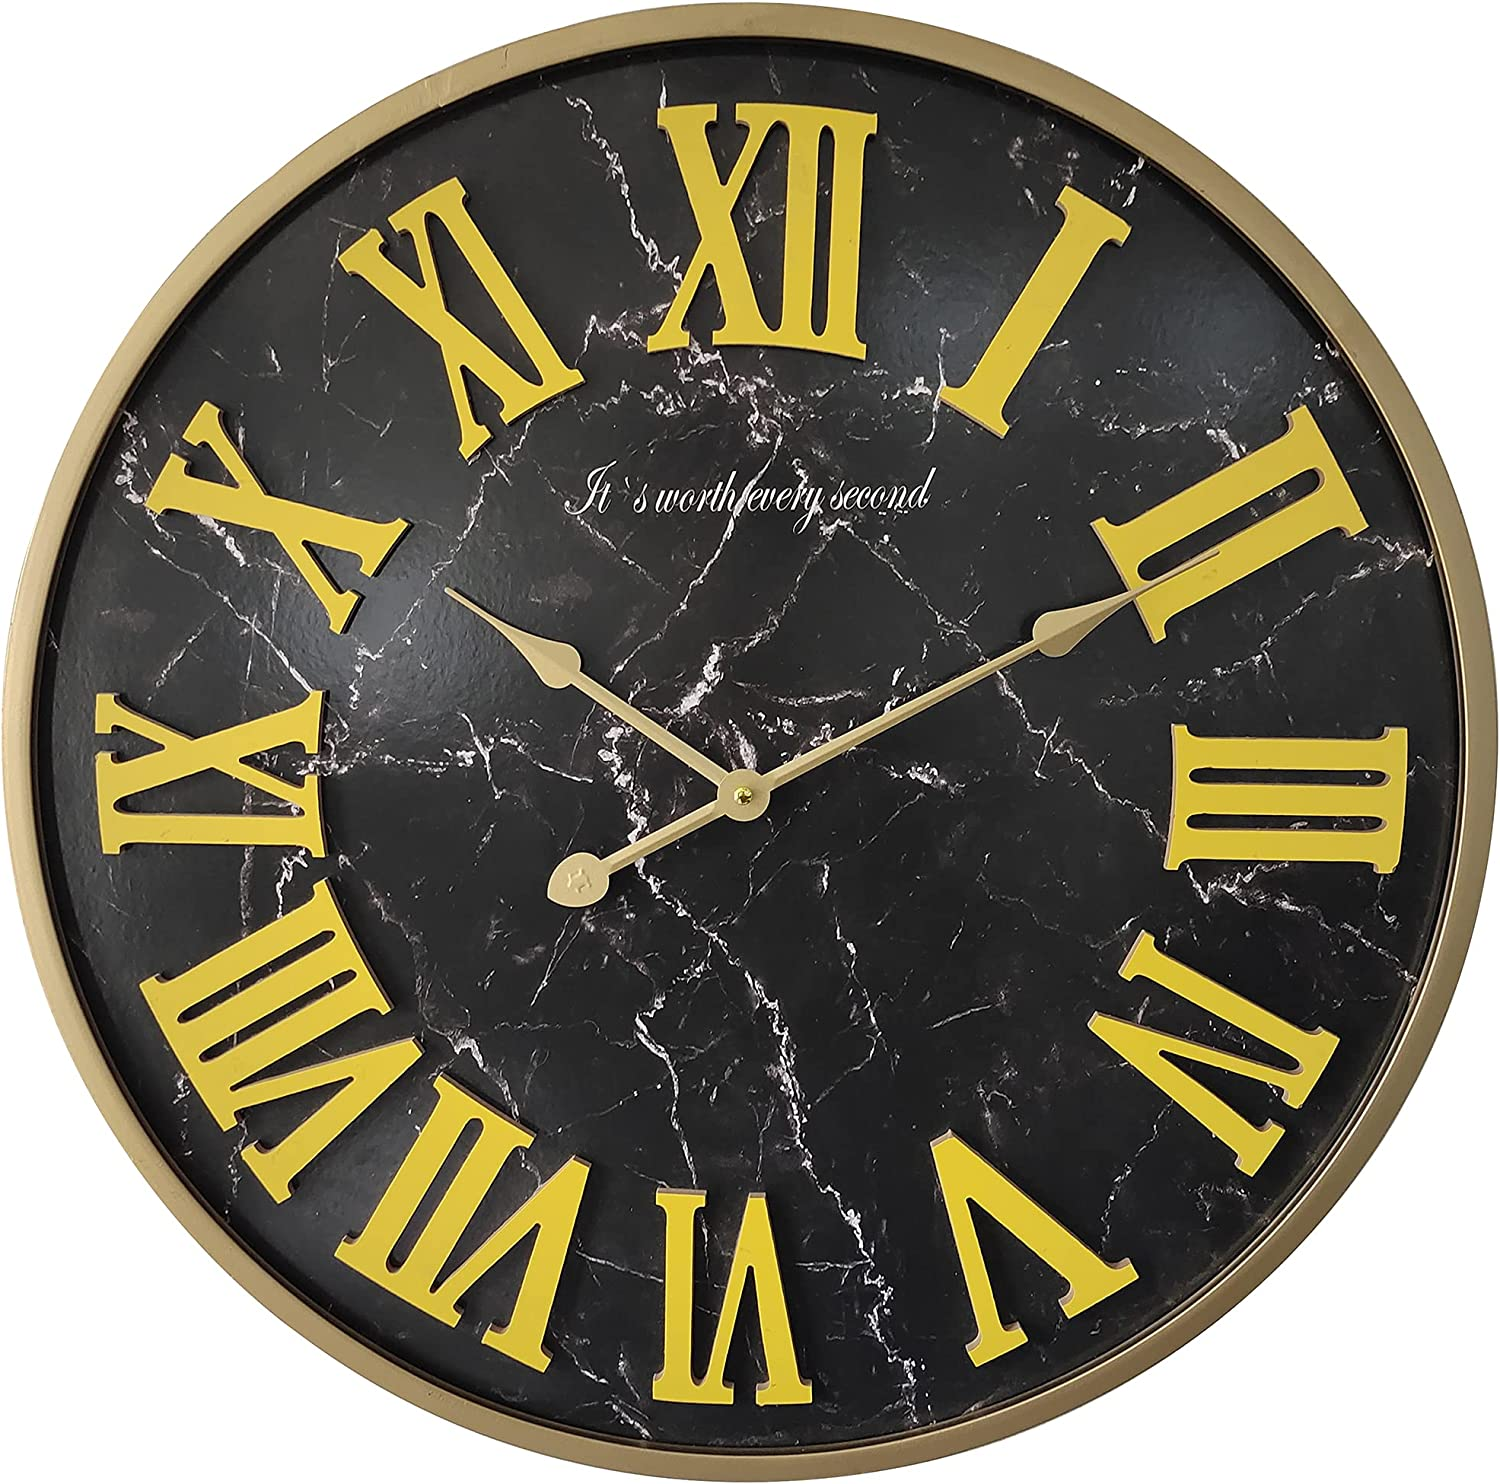 24 inch Wood & Metal Frame Large Decor Wall Clock Decorative Clocks for Living Room,Oversized,Black Marble Texture,Thick and Heavy 5.7 lbs